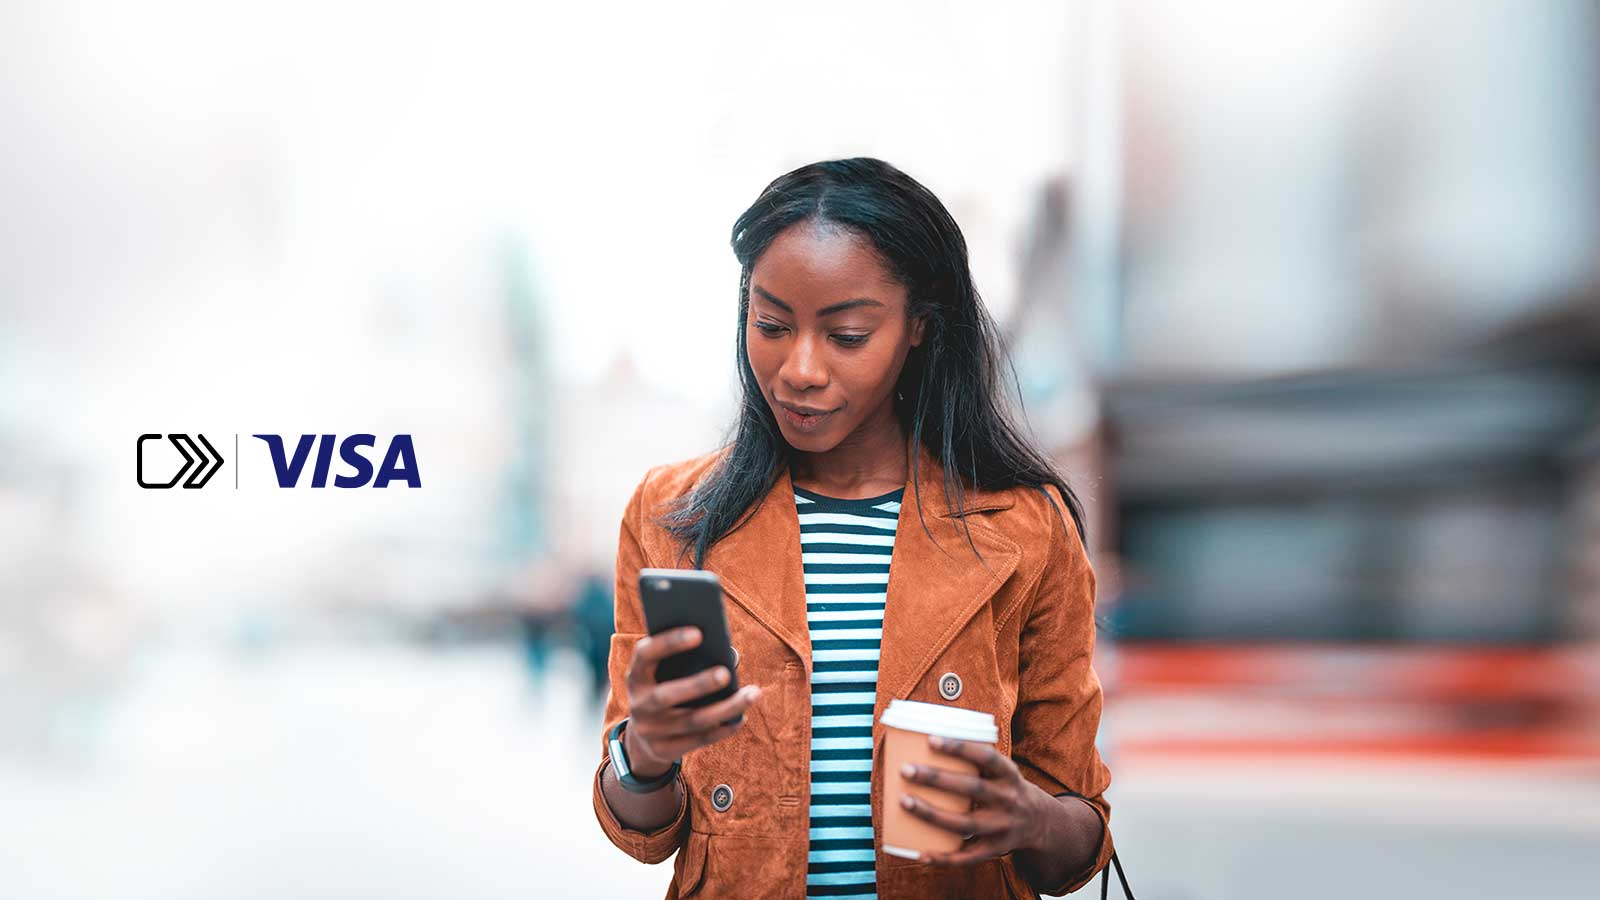 A young woman, uses her phone while holding a cup of coffee and  SRC icon and Visa logo on left side of the image.